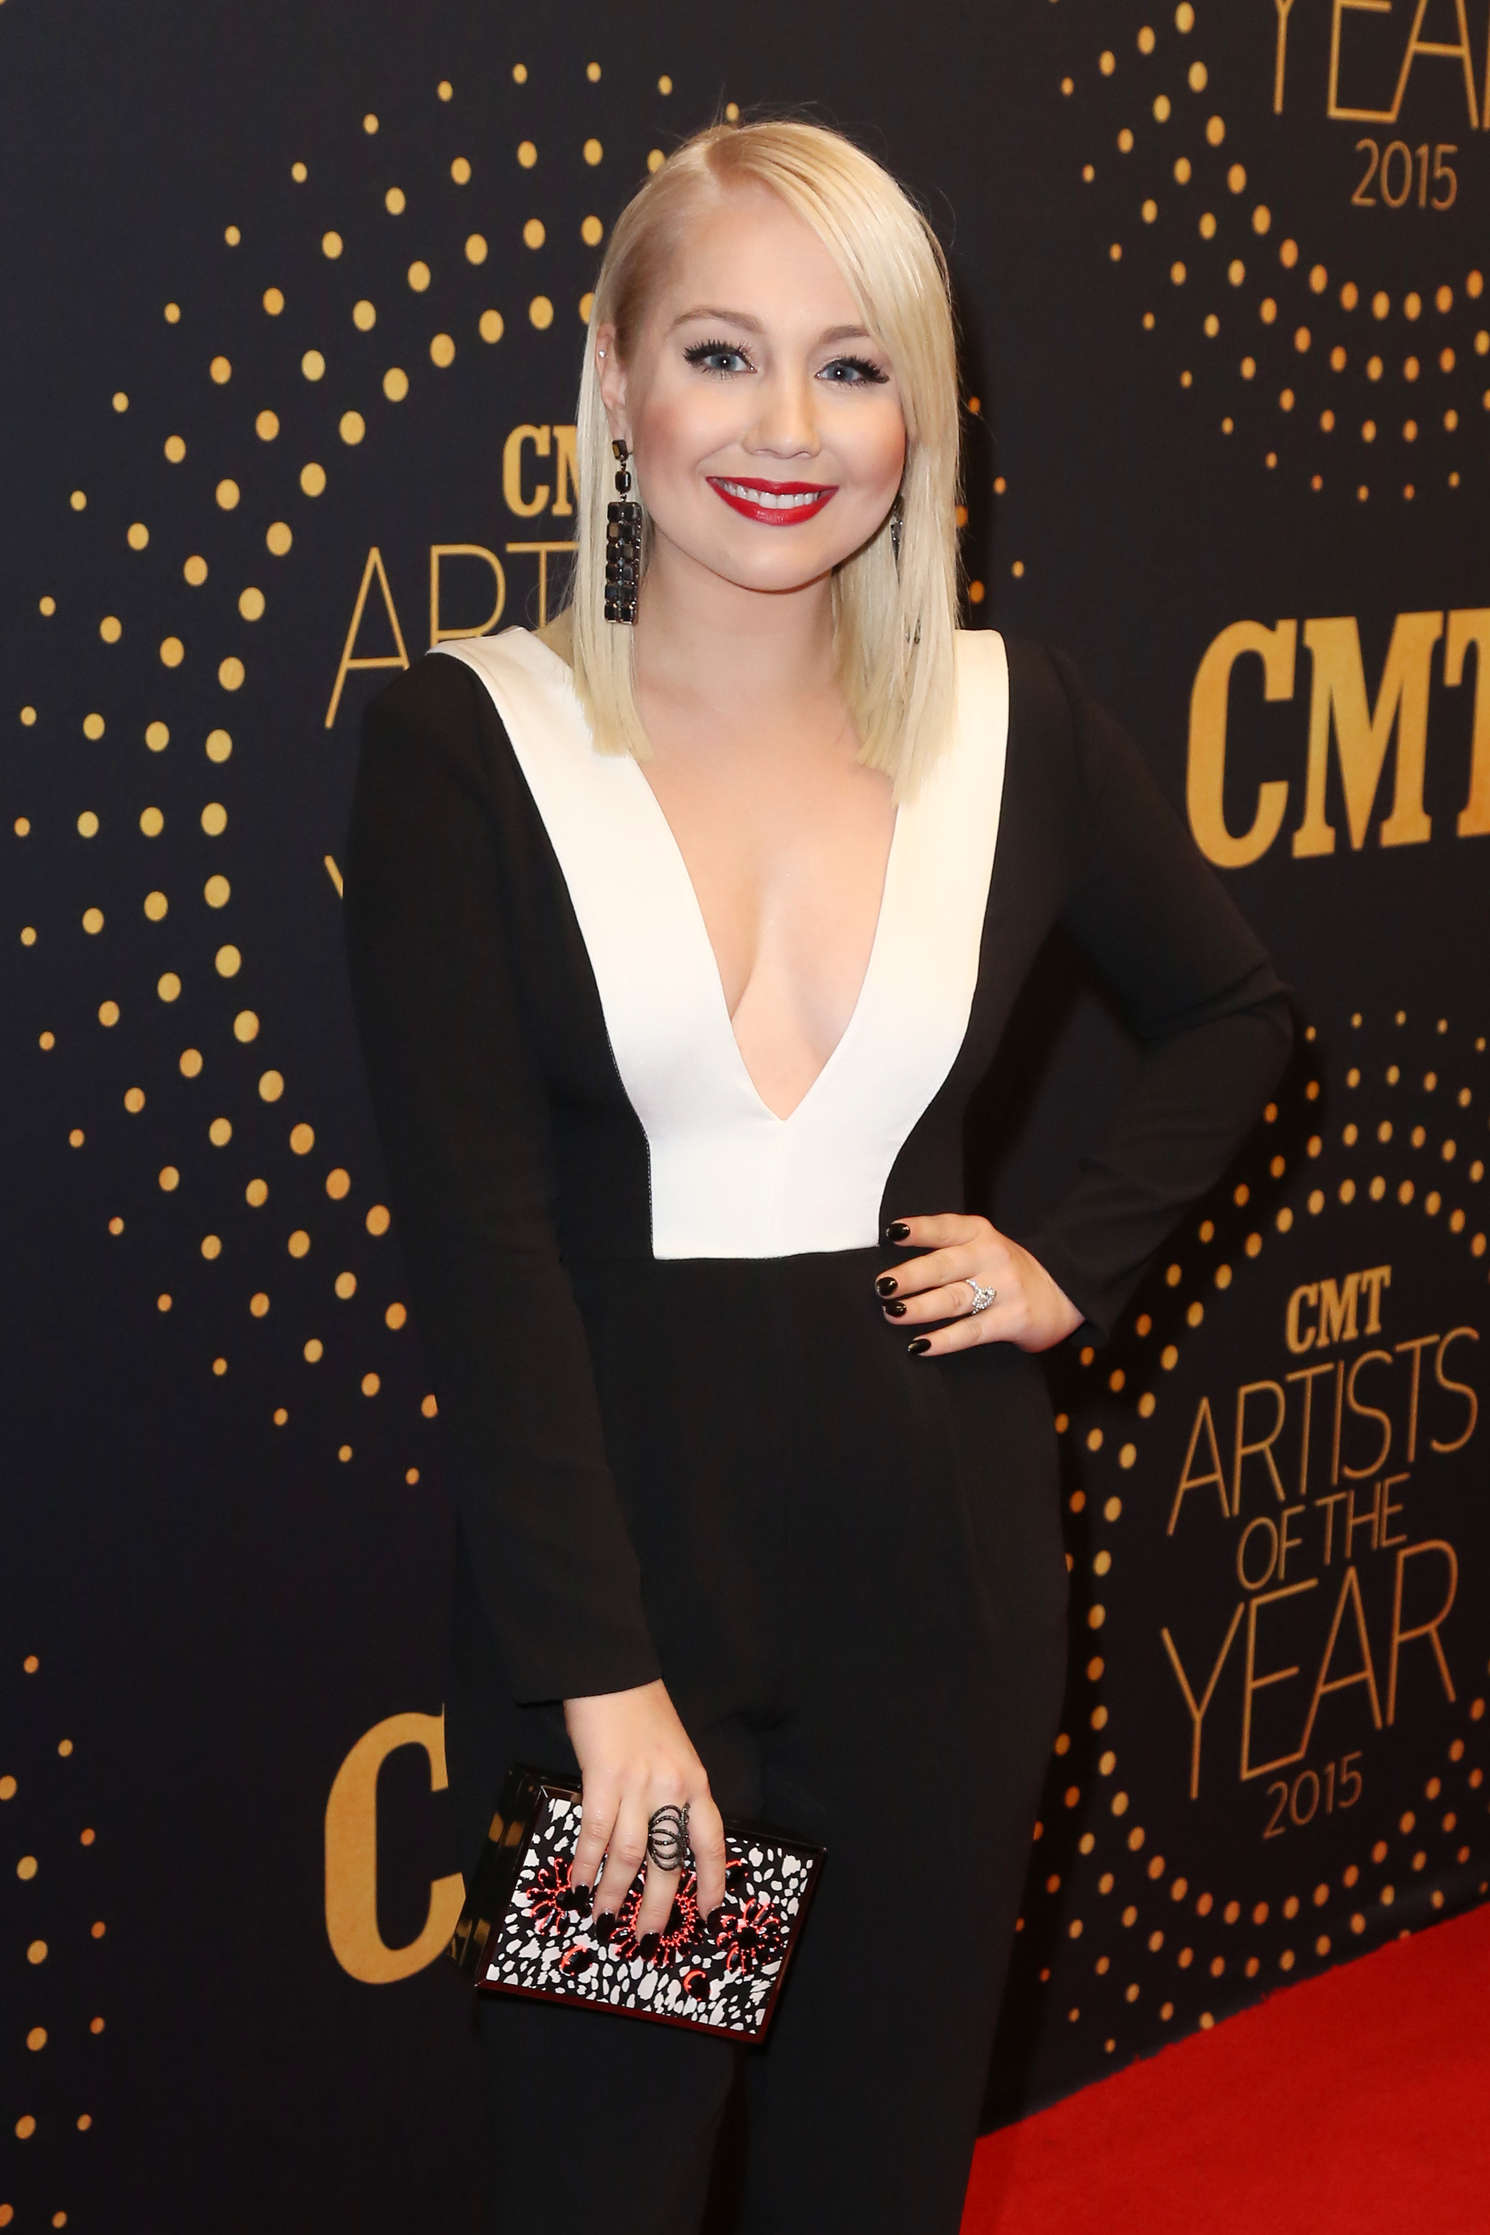 RaeLynn CMT Artists of the Year in Nashville